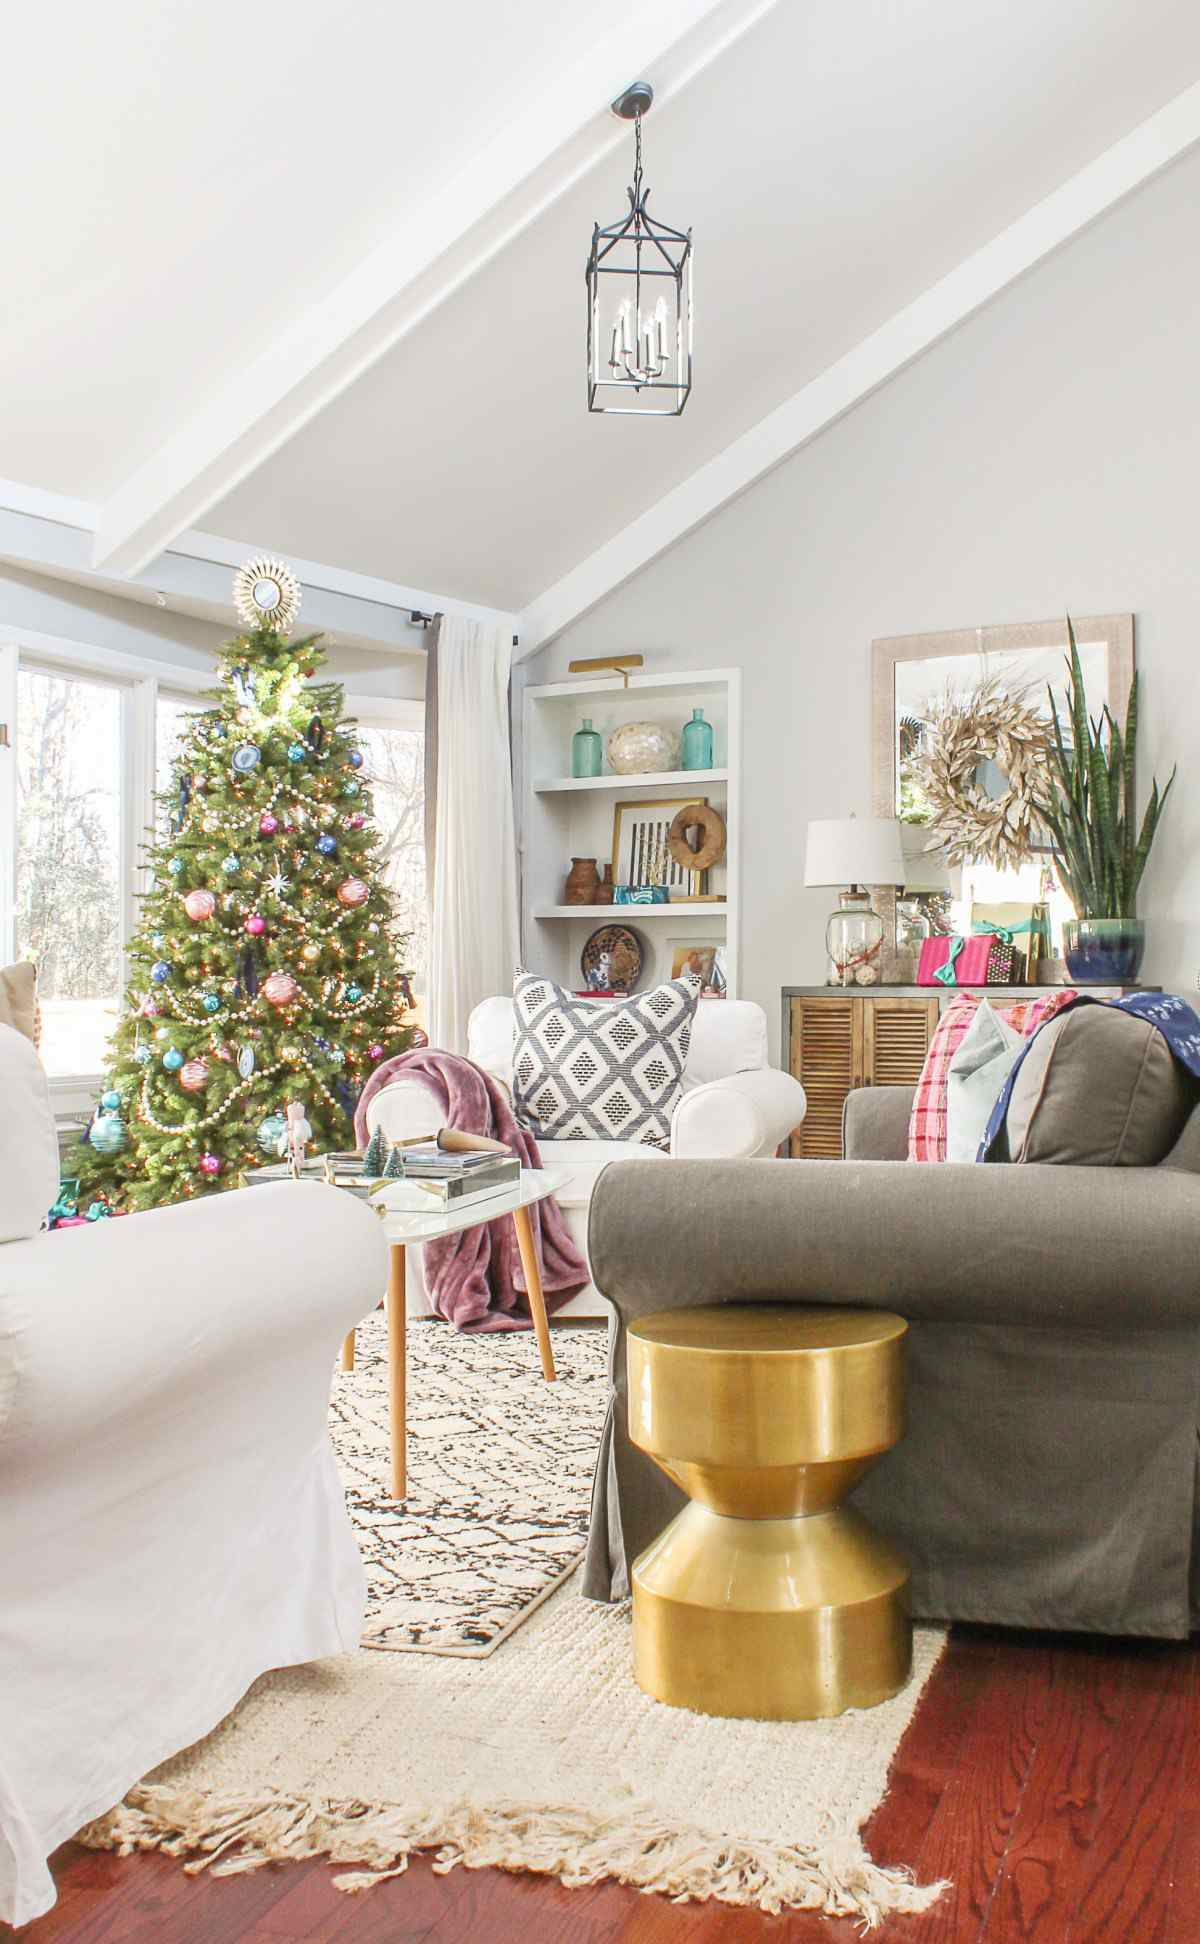 21 beautiful ways to decorate the living room for christmas - How To Decorate House For Christmas